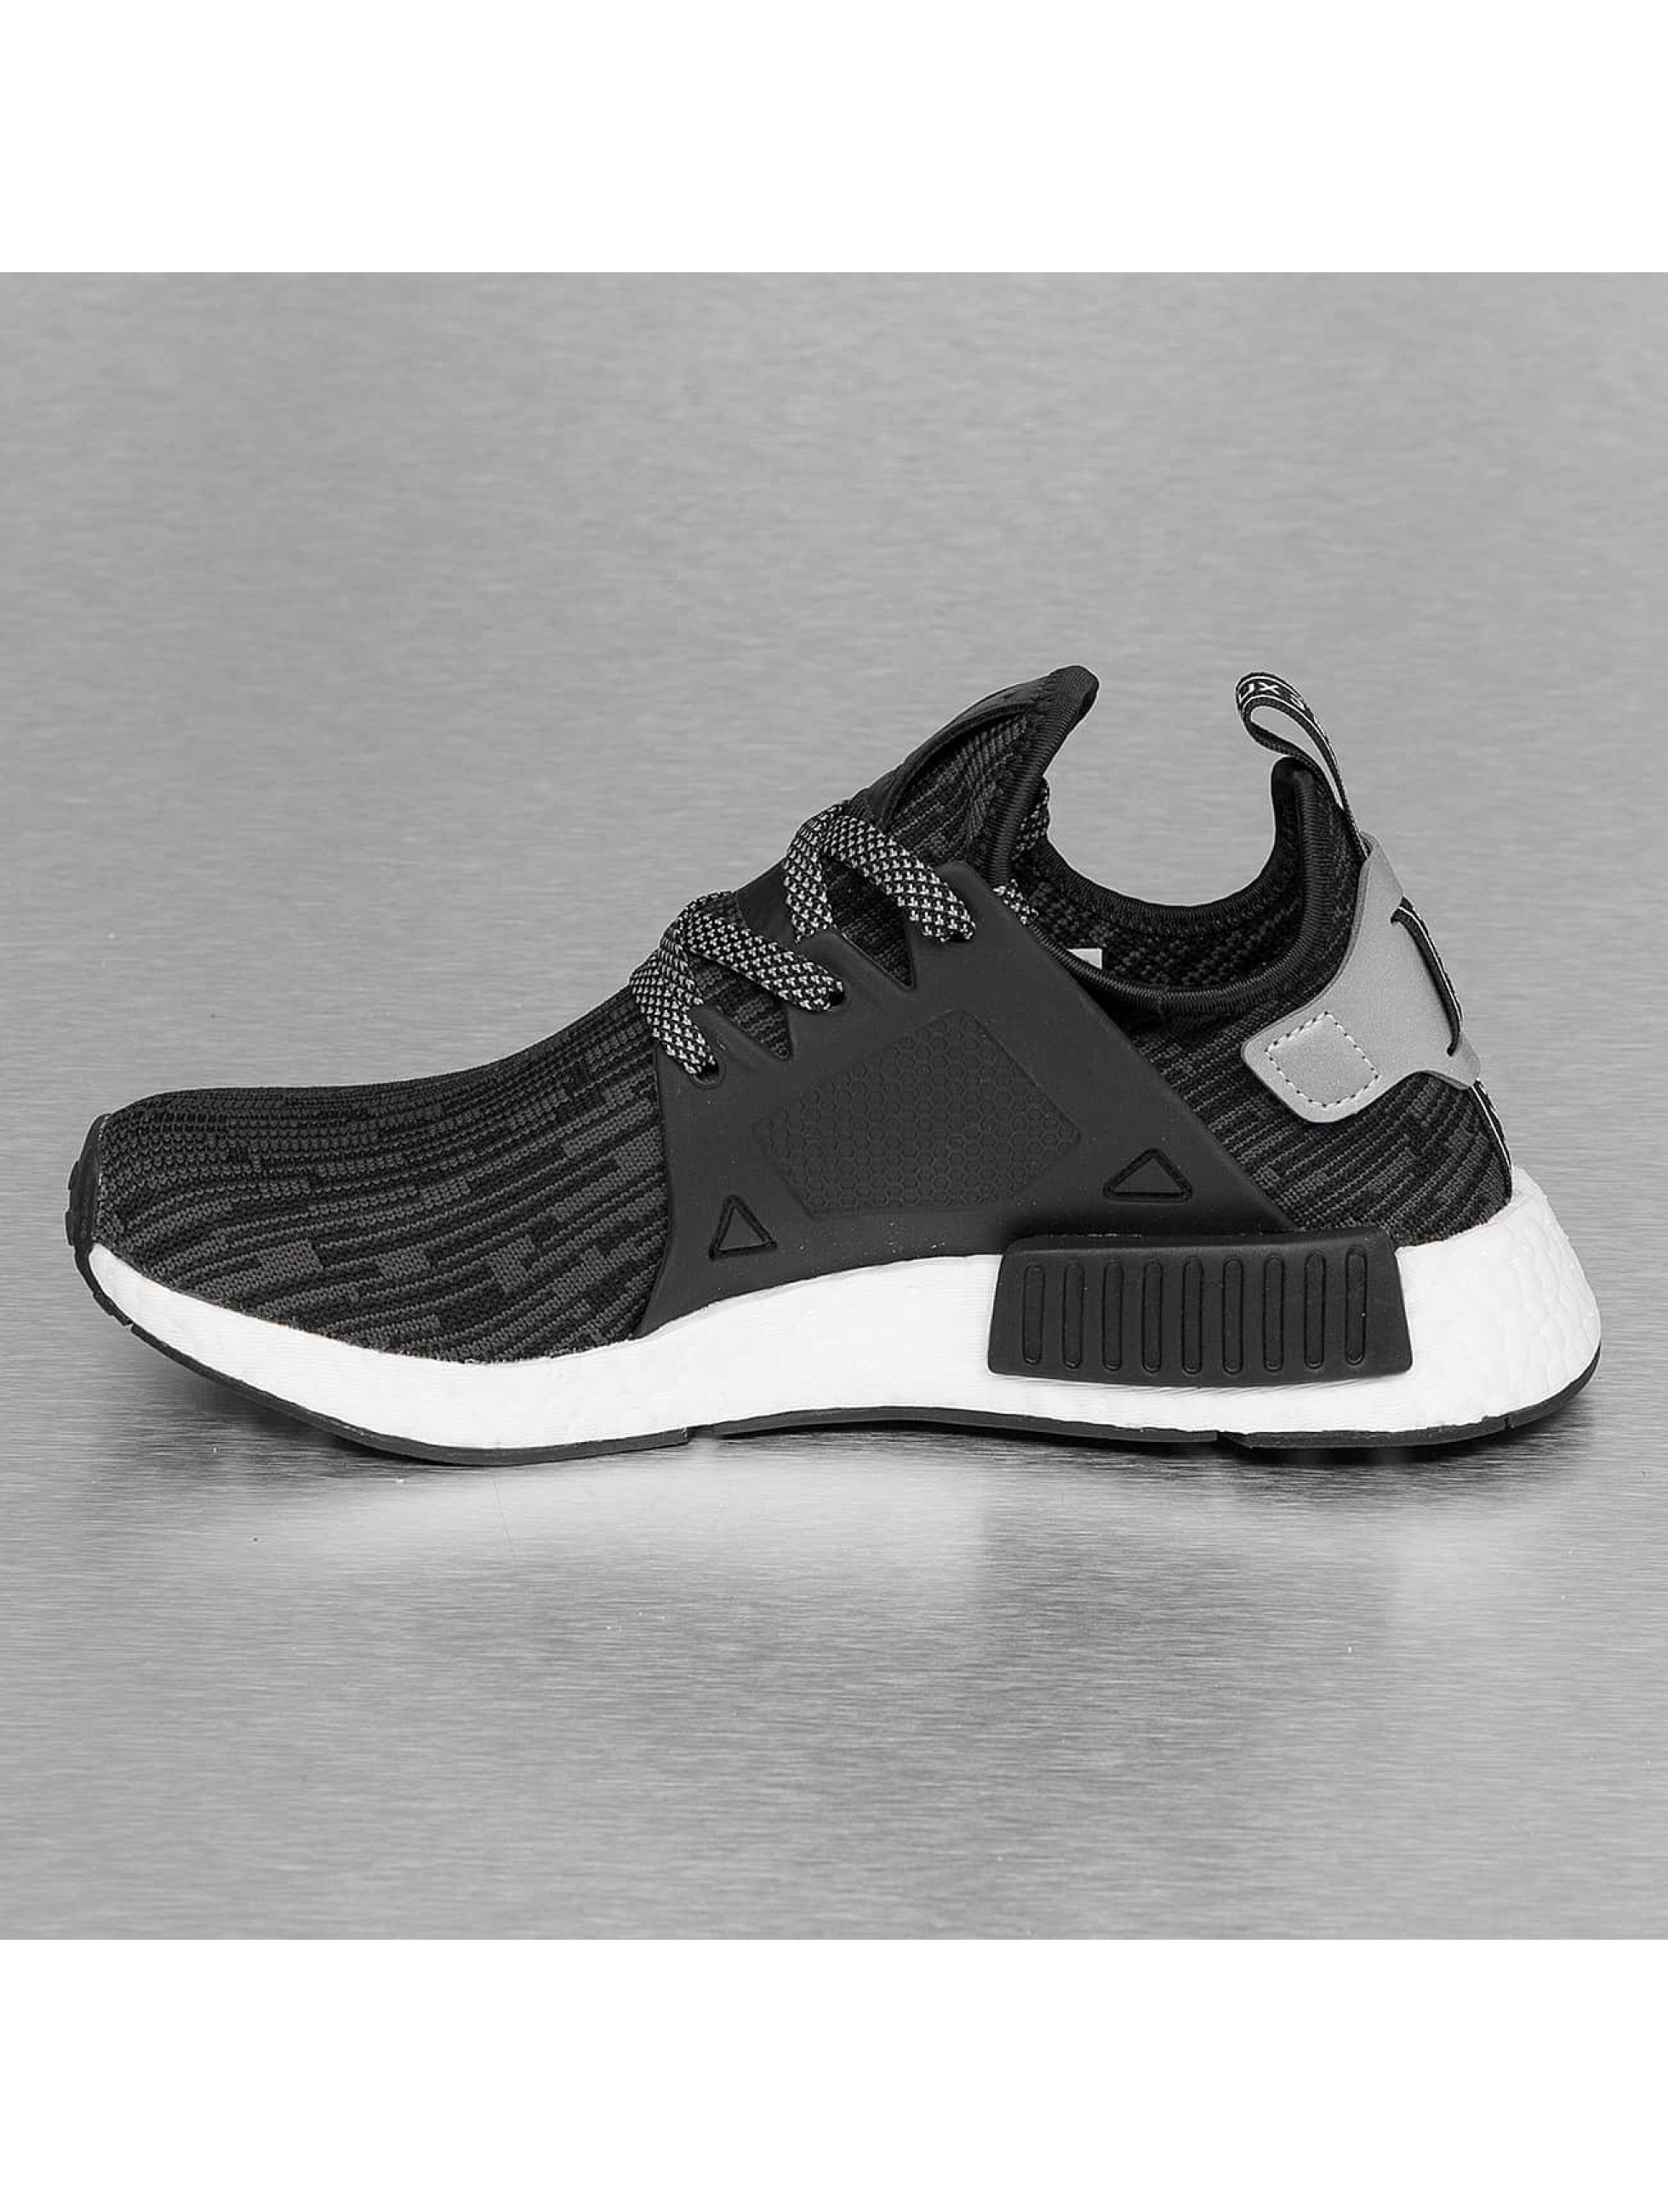 adidas herren schuhe sneaker nmd xr1 ebay. Black Bedroom Furniture Sets. Home Design Ideas